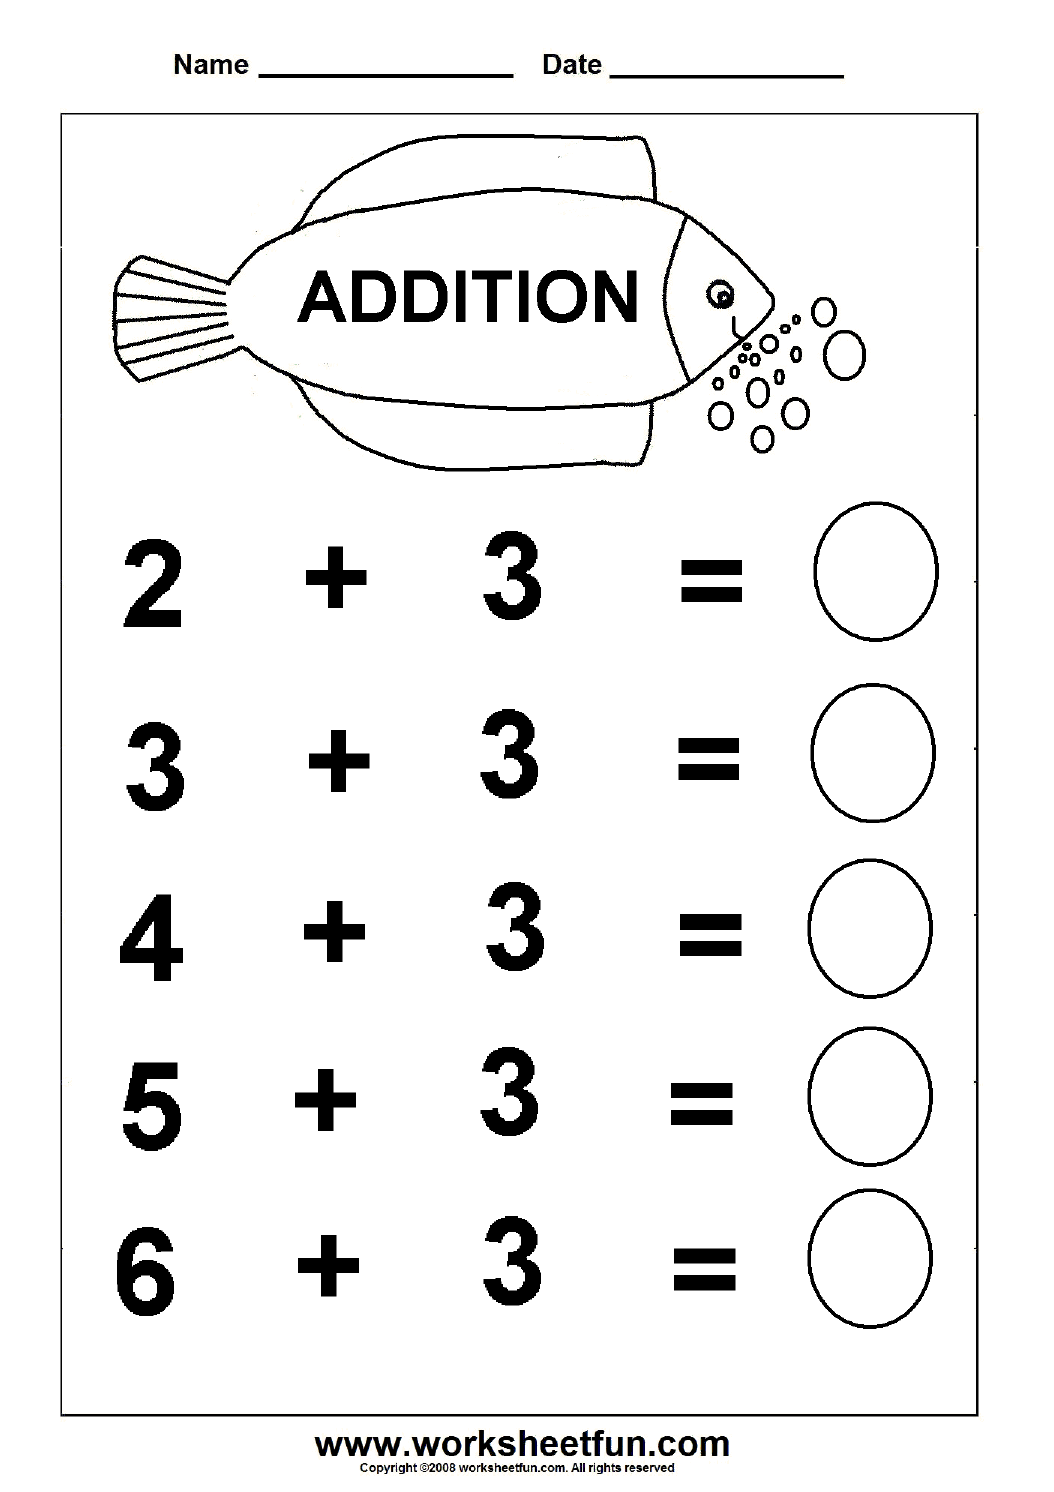 Addition Basic Addition Facts FREE Printable Worksheets – Addition Worksheets Free